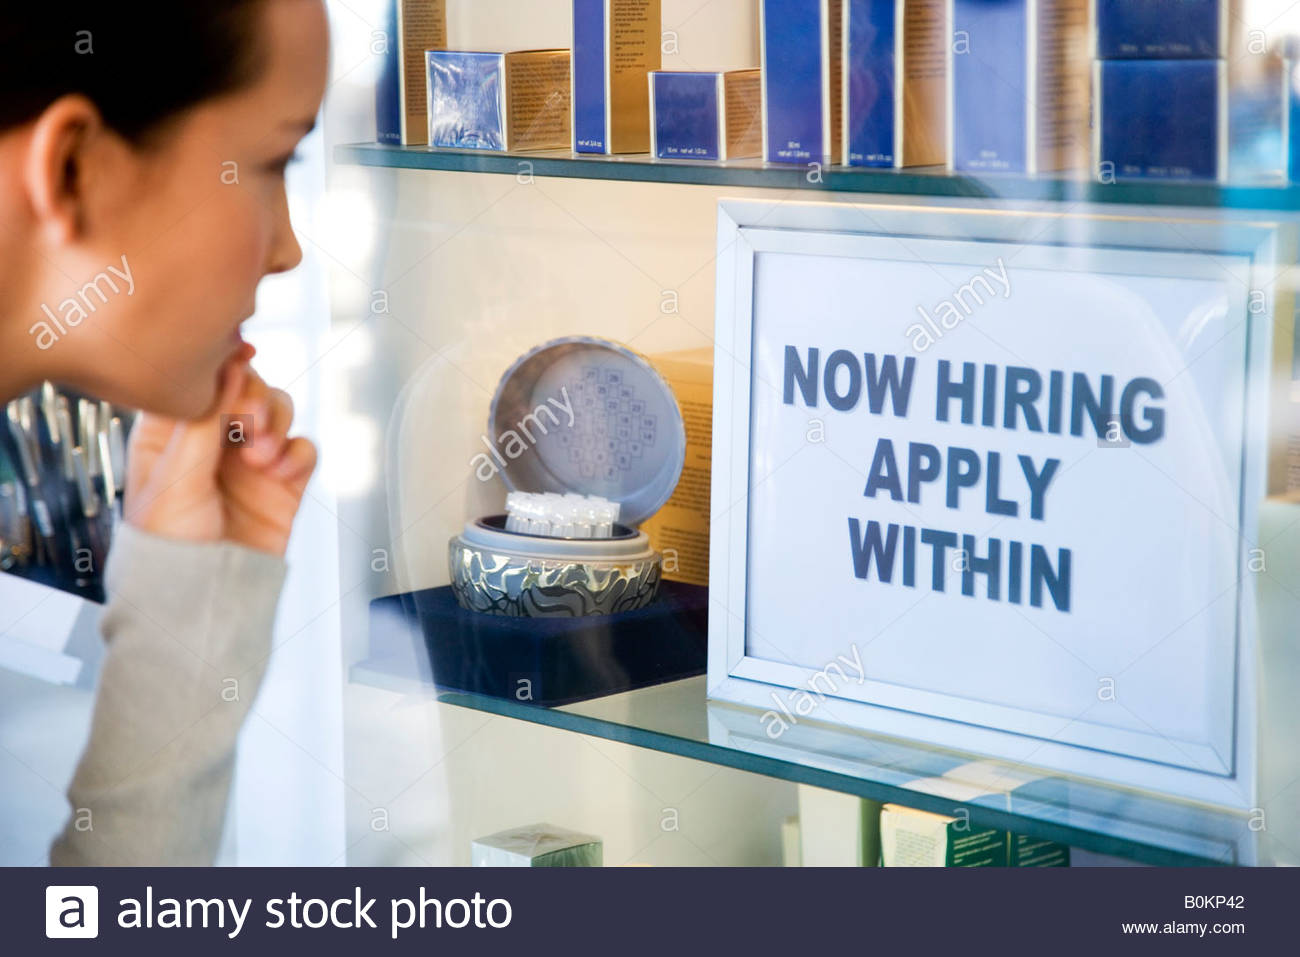 Woman looking at job advert in shop window - Stock Image